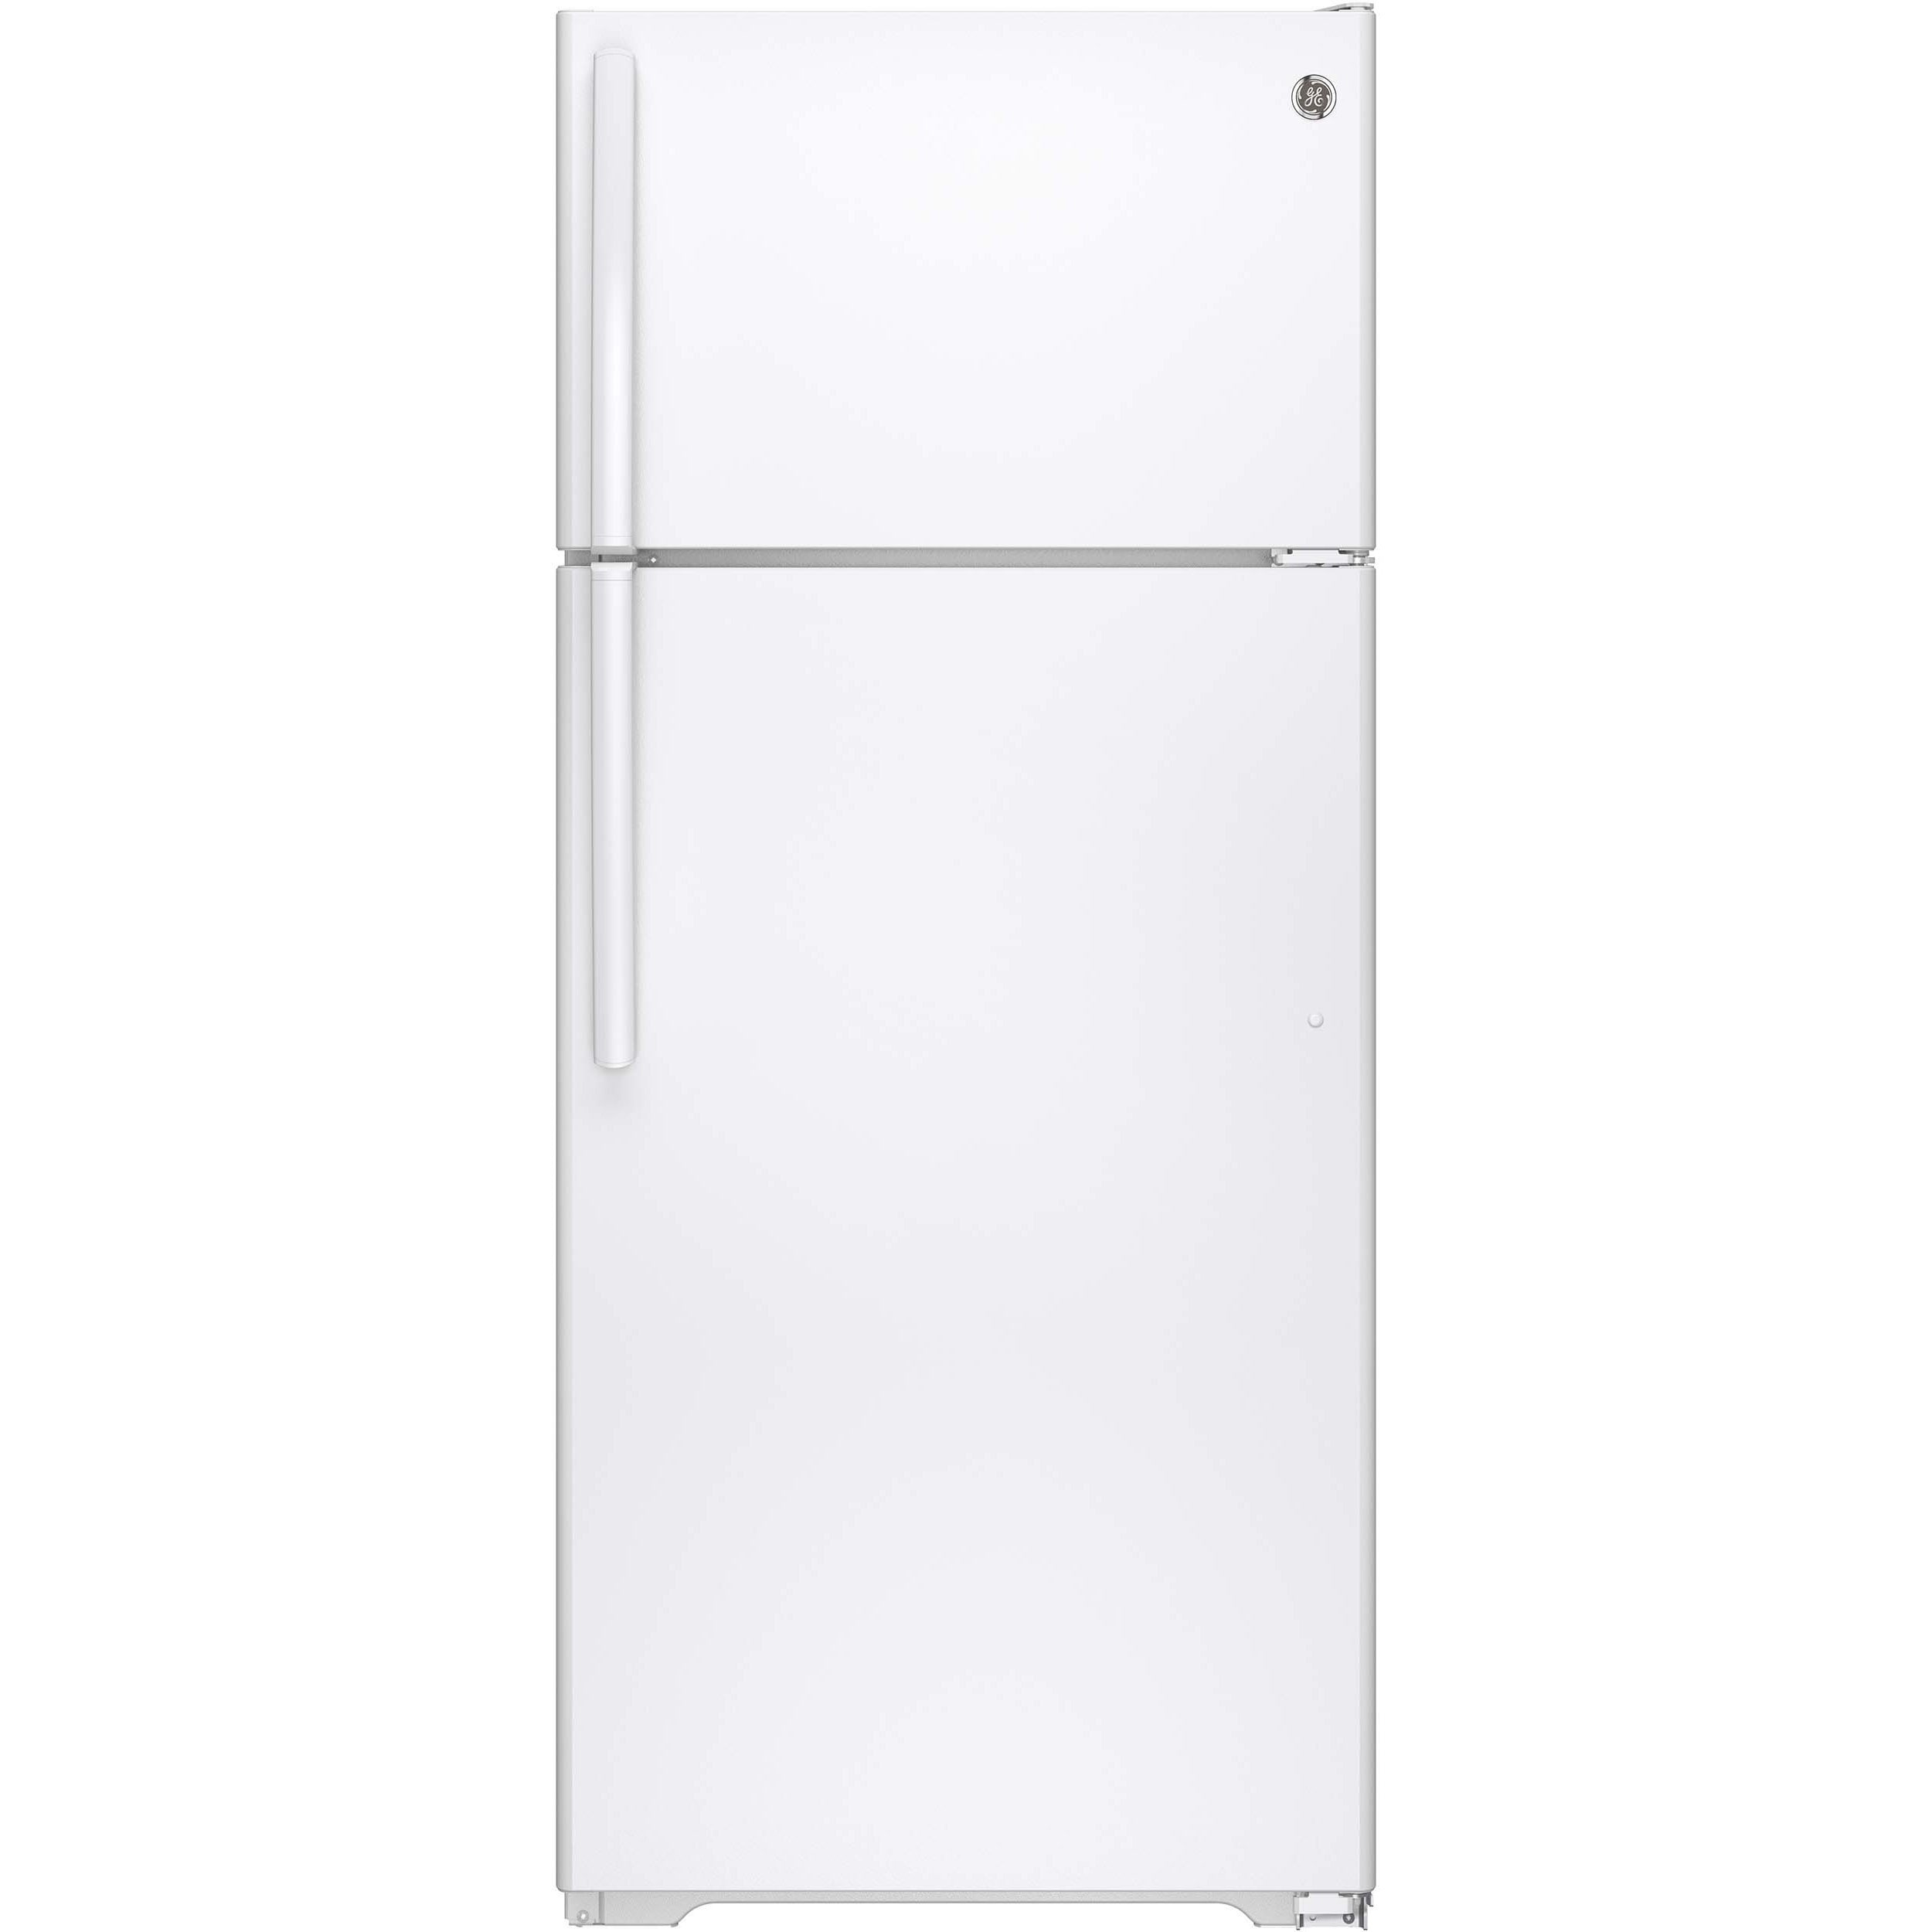 GE Energy Star 17.5 Cubic-foot White Top-freezer Refrigerator White